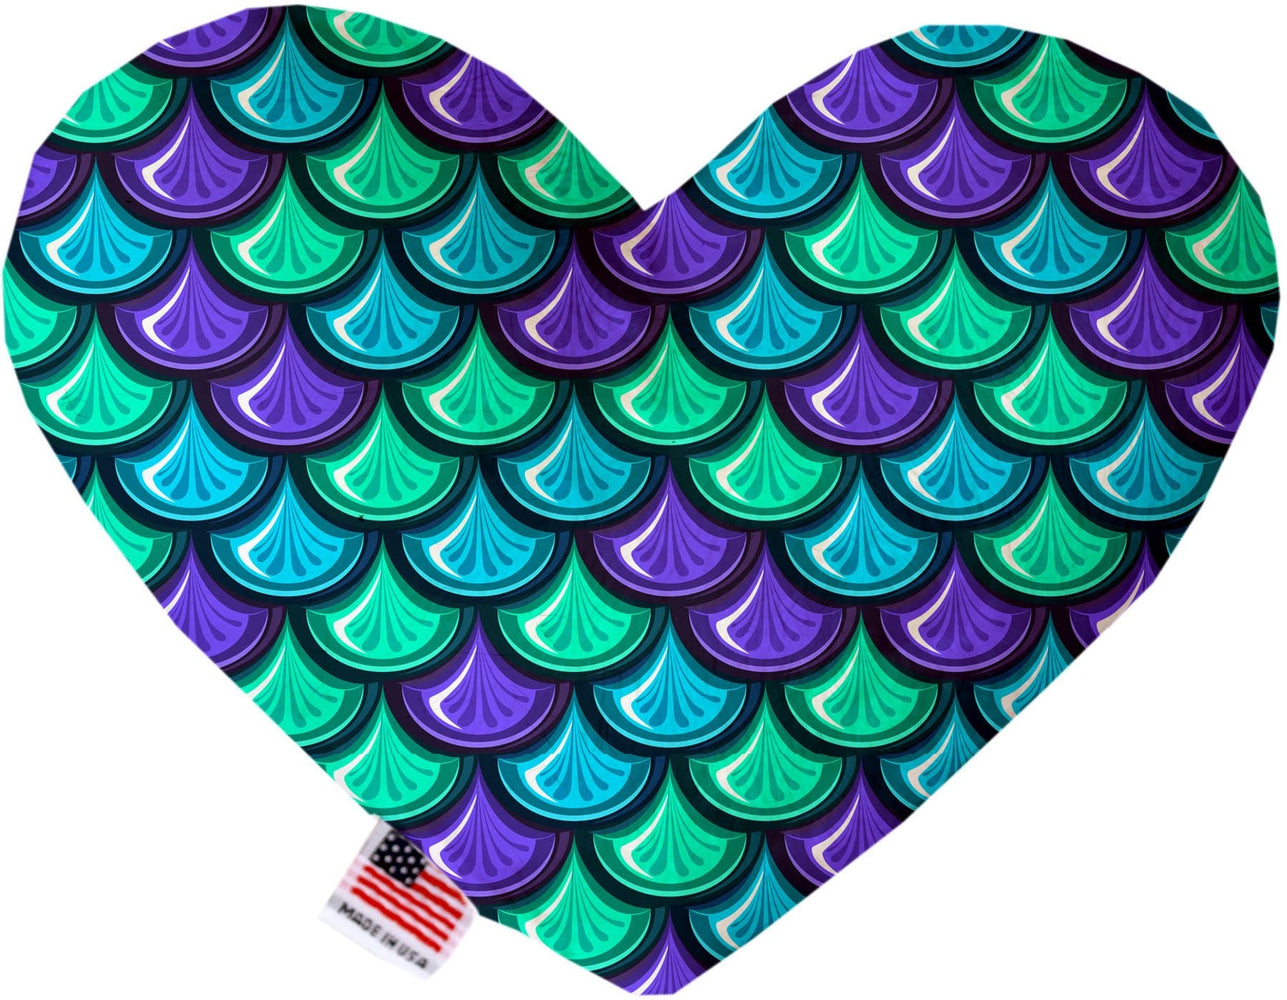 Mermaid Scales Canvas Heart Dog Toy